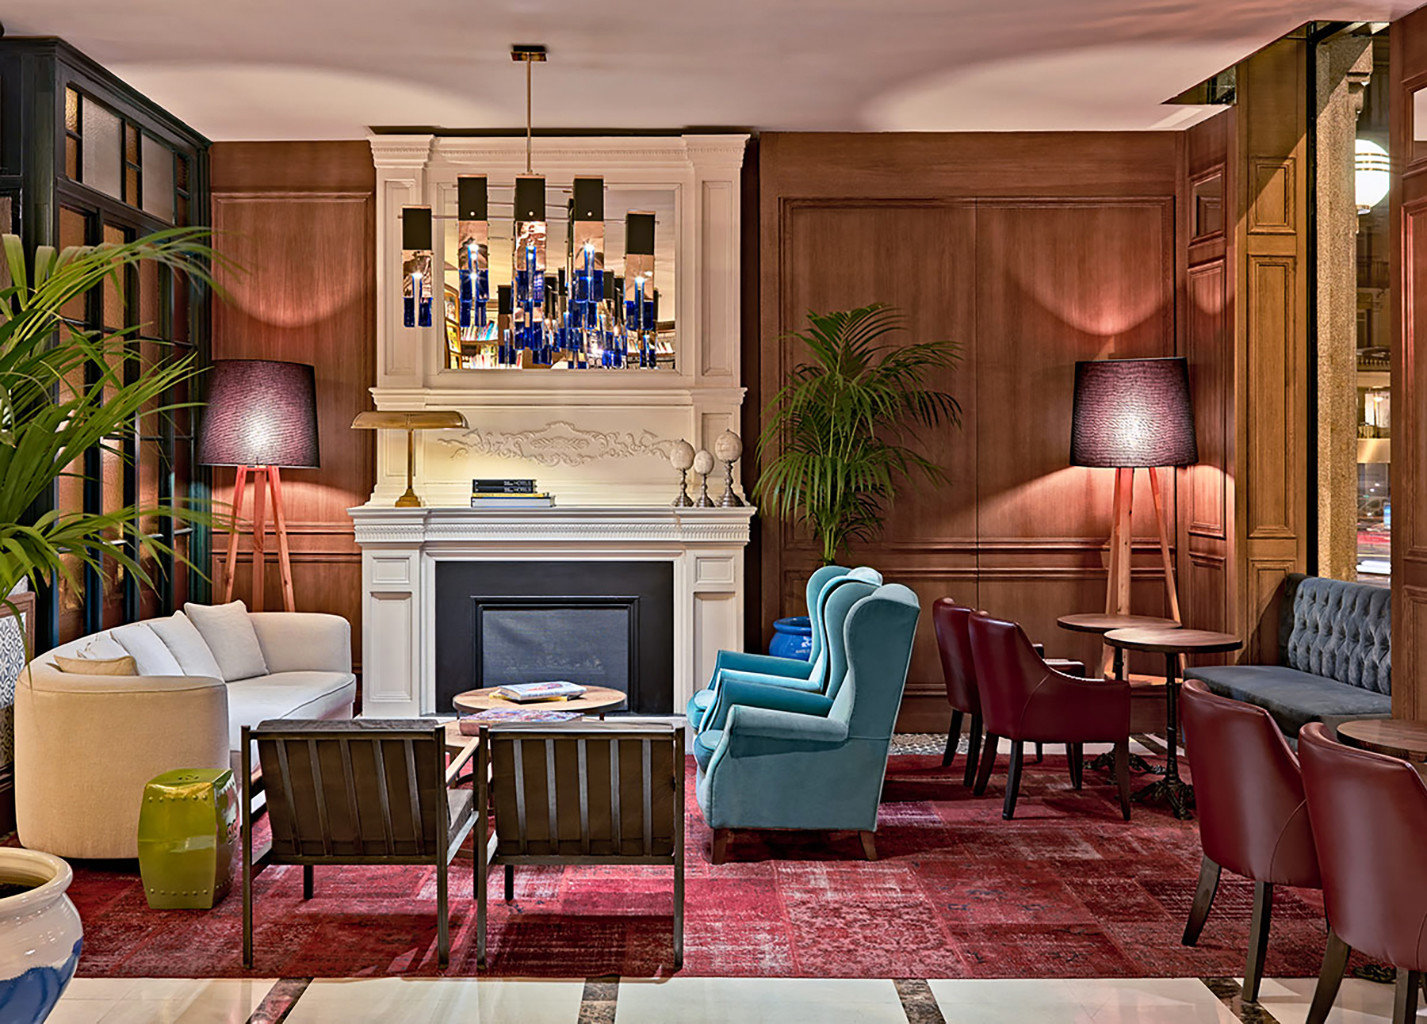 living room chair property home Lobby mansion Suite recreation room